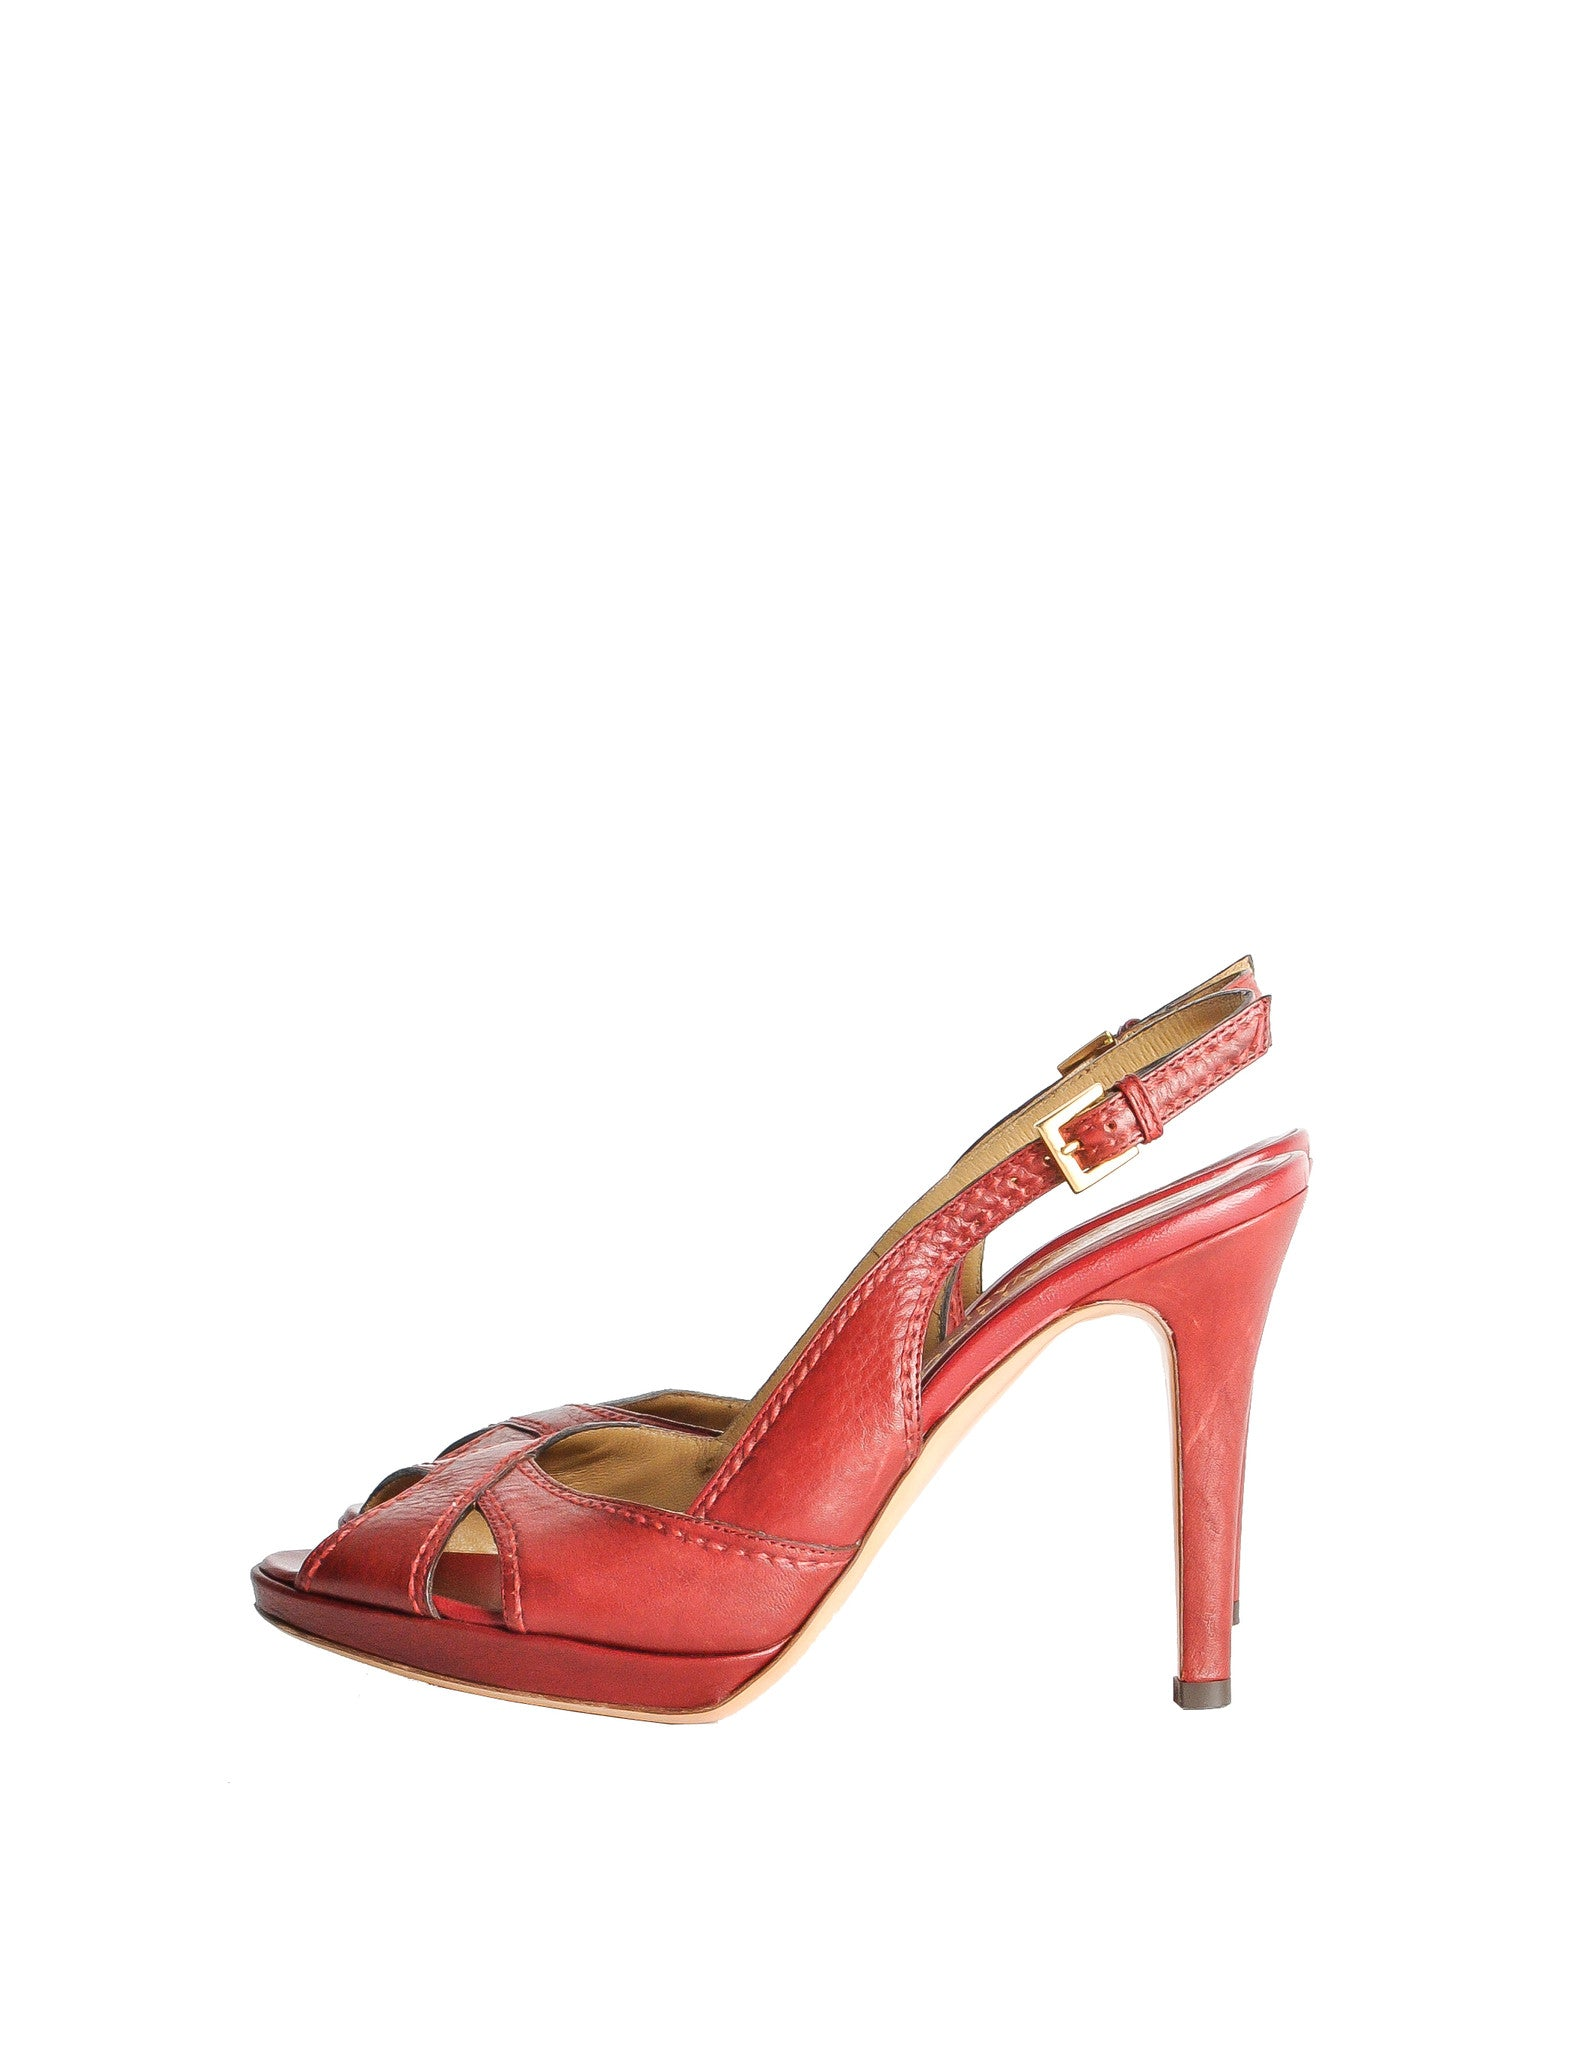 Valentino Vintage Red Leather Strappy Heels - Amarcord Vintage Fashion  - 1